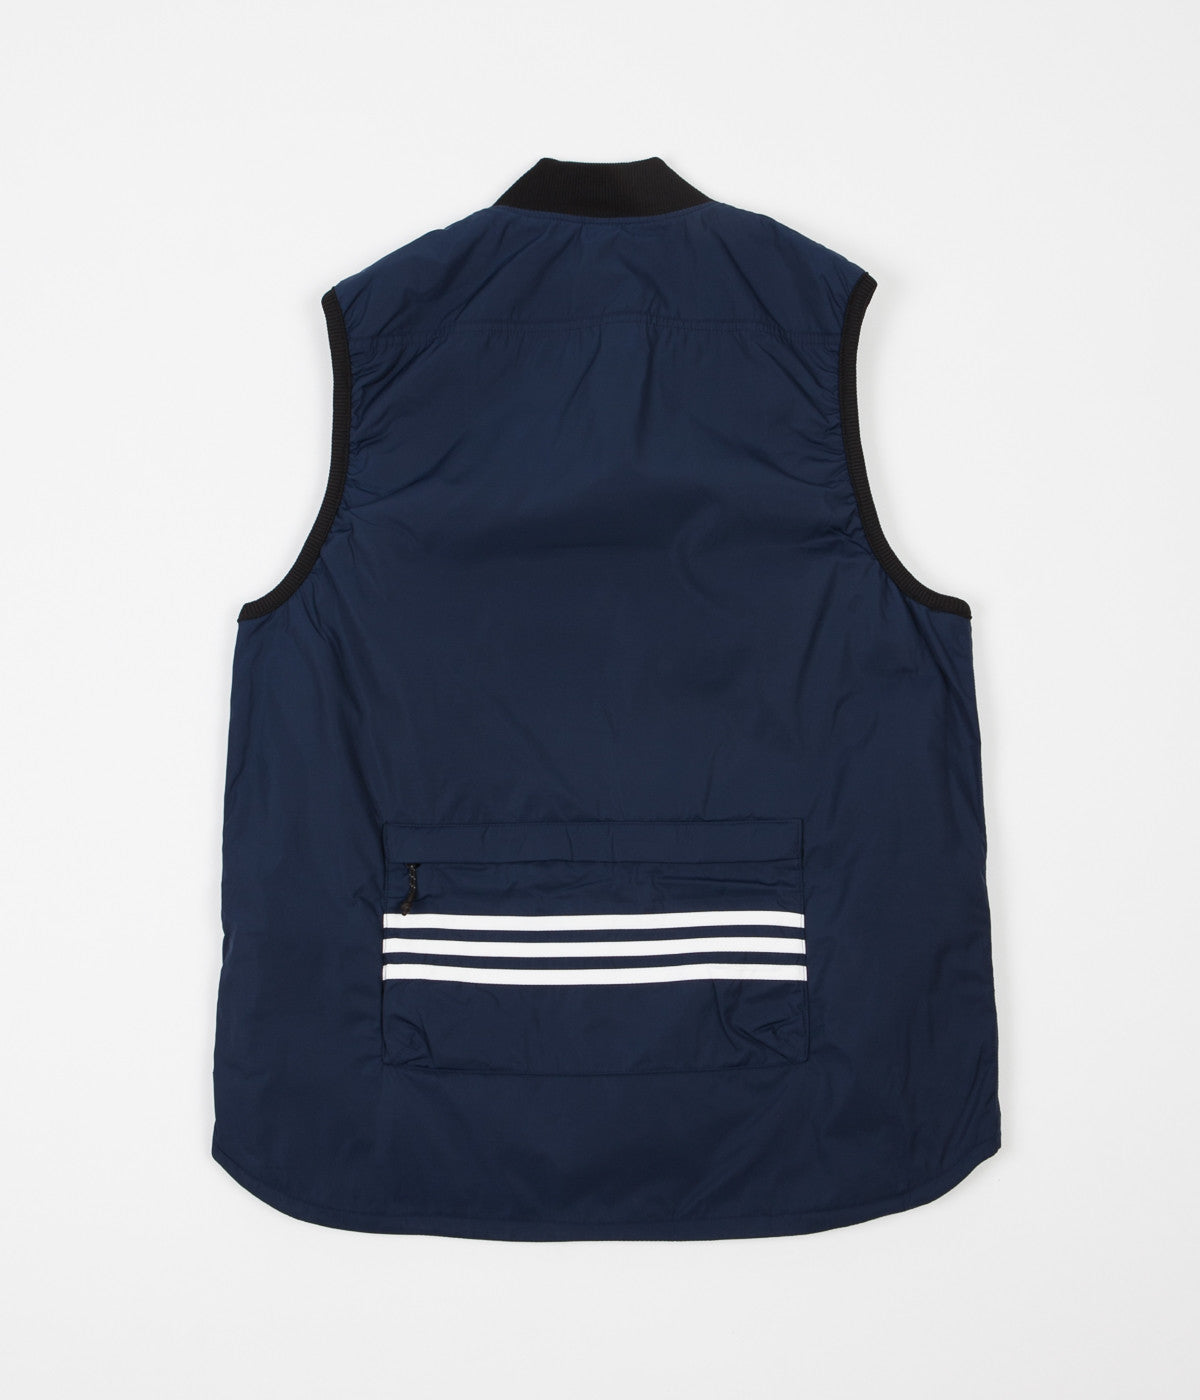 Adidas Meade Light Vest - Collegiate Navy / Black